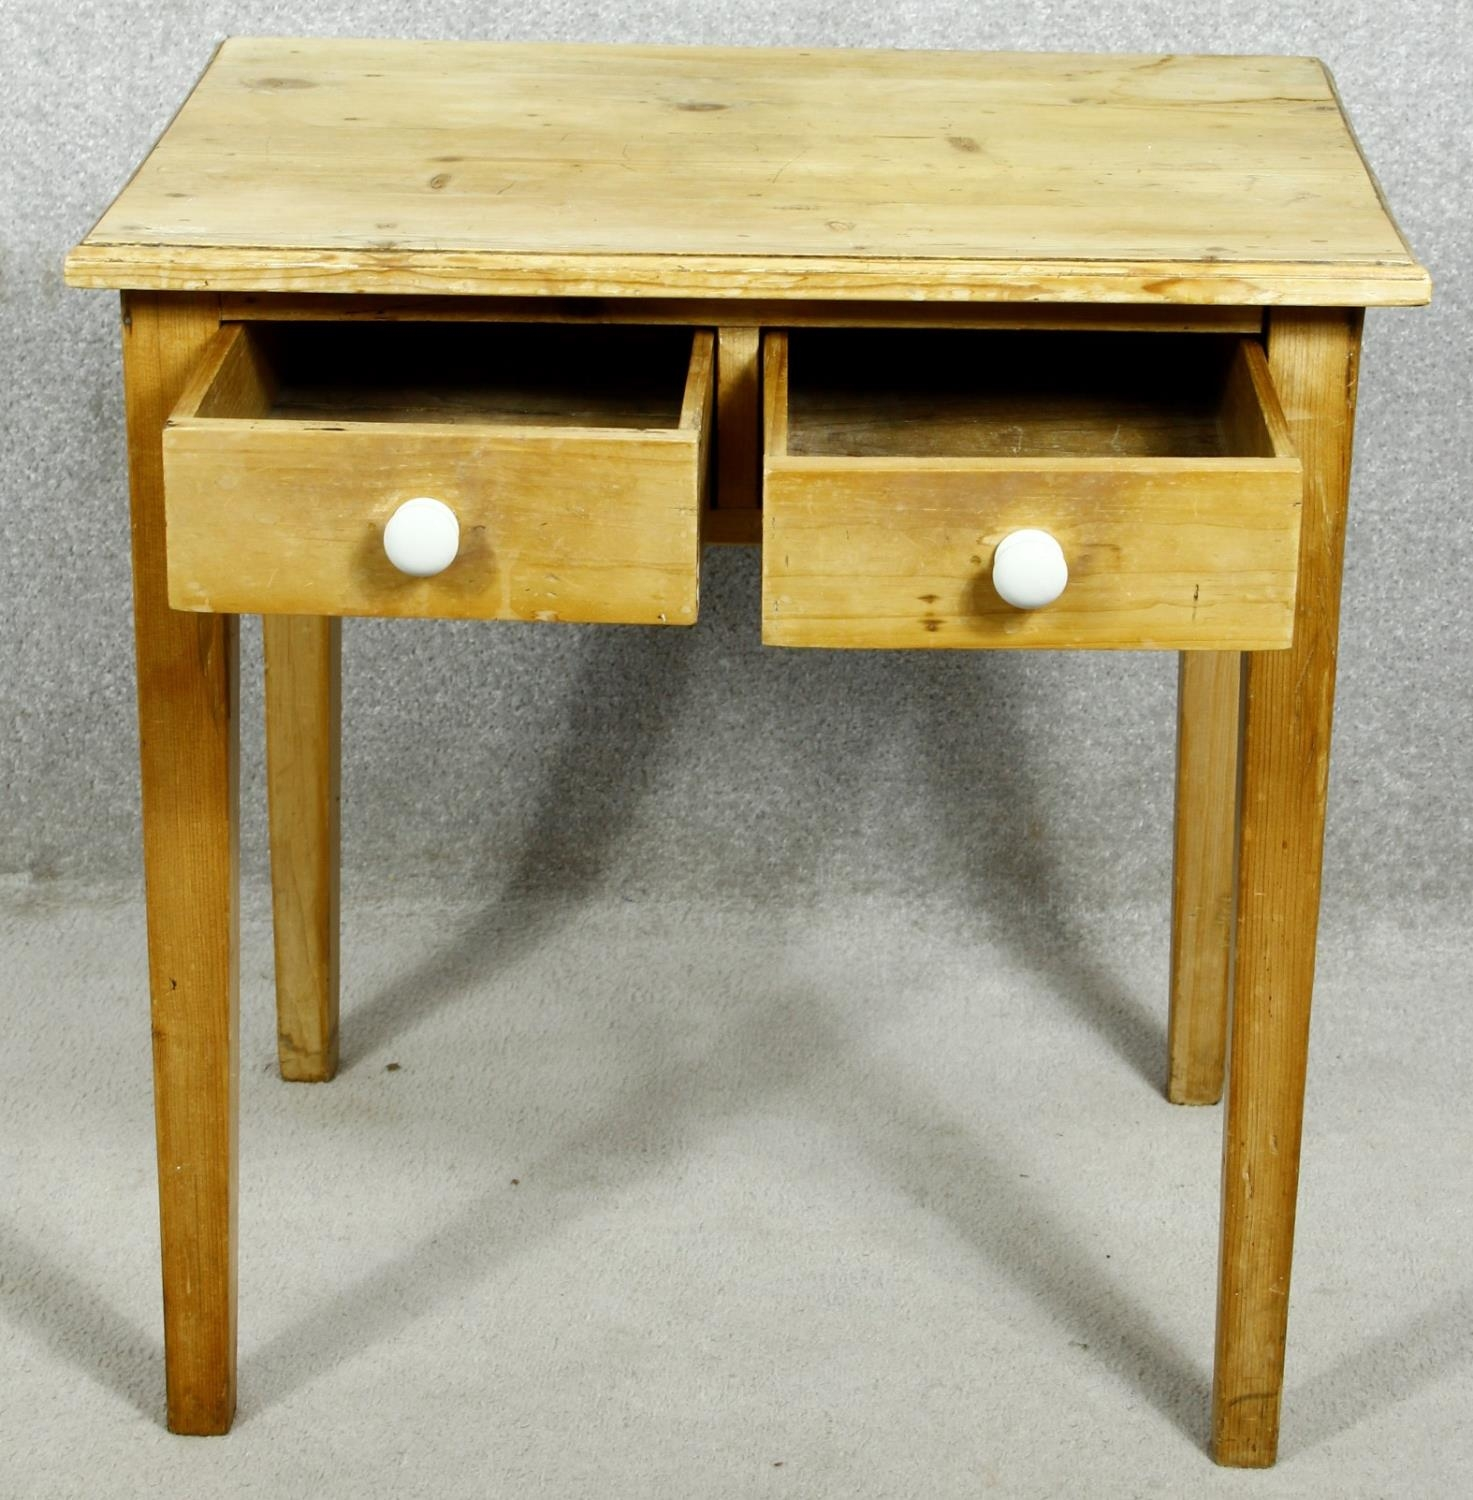 A 19th century pine side table with frieze drawers on square tapering supports. H.63 W.63 D.45cm - Image 2 of 7